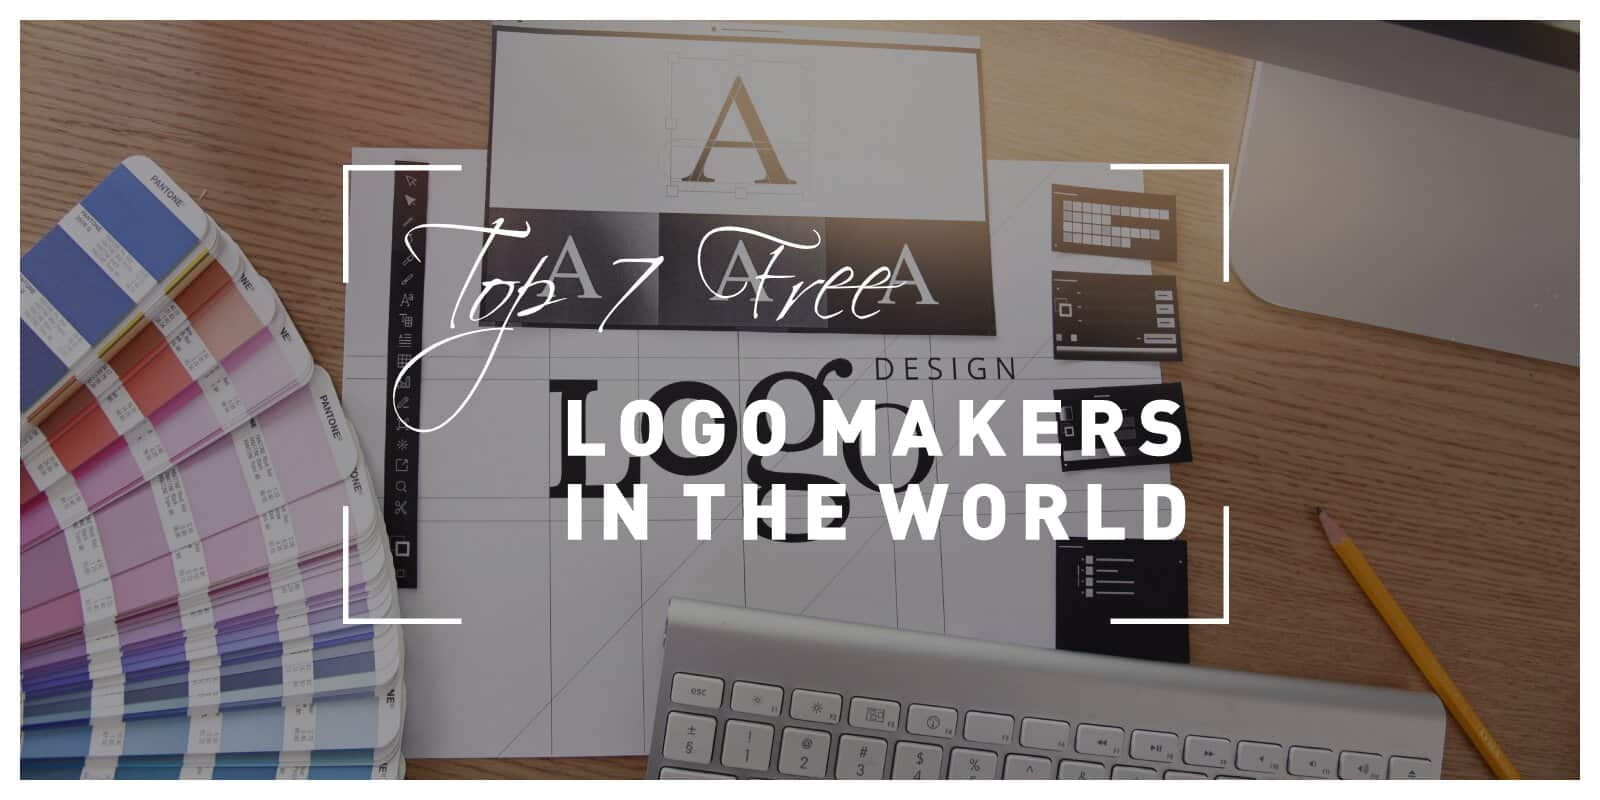 Comparing the Top 7 Free Logo Makers in the World